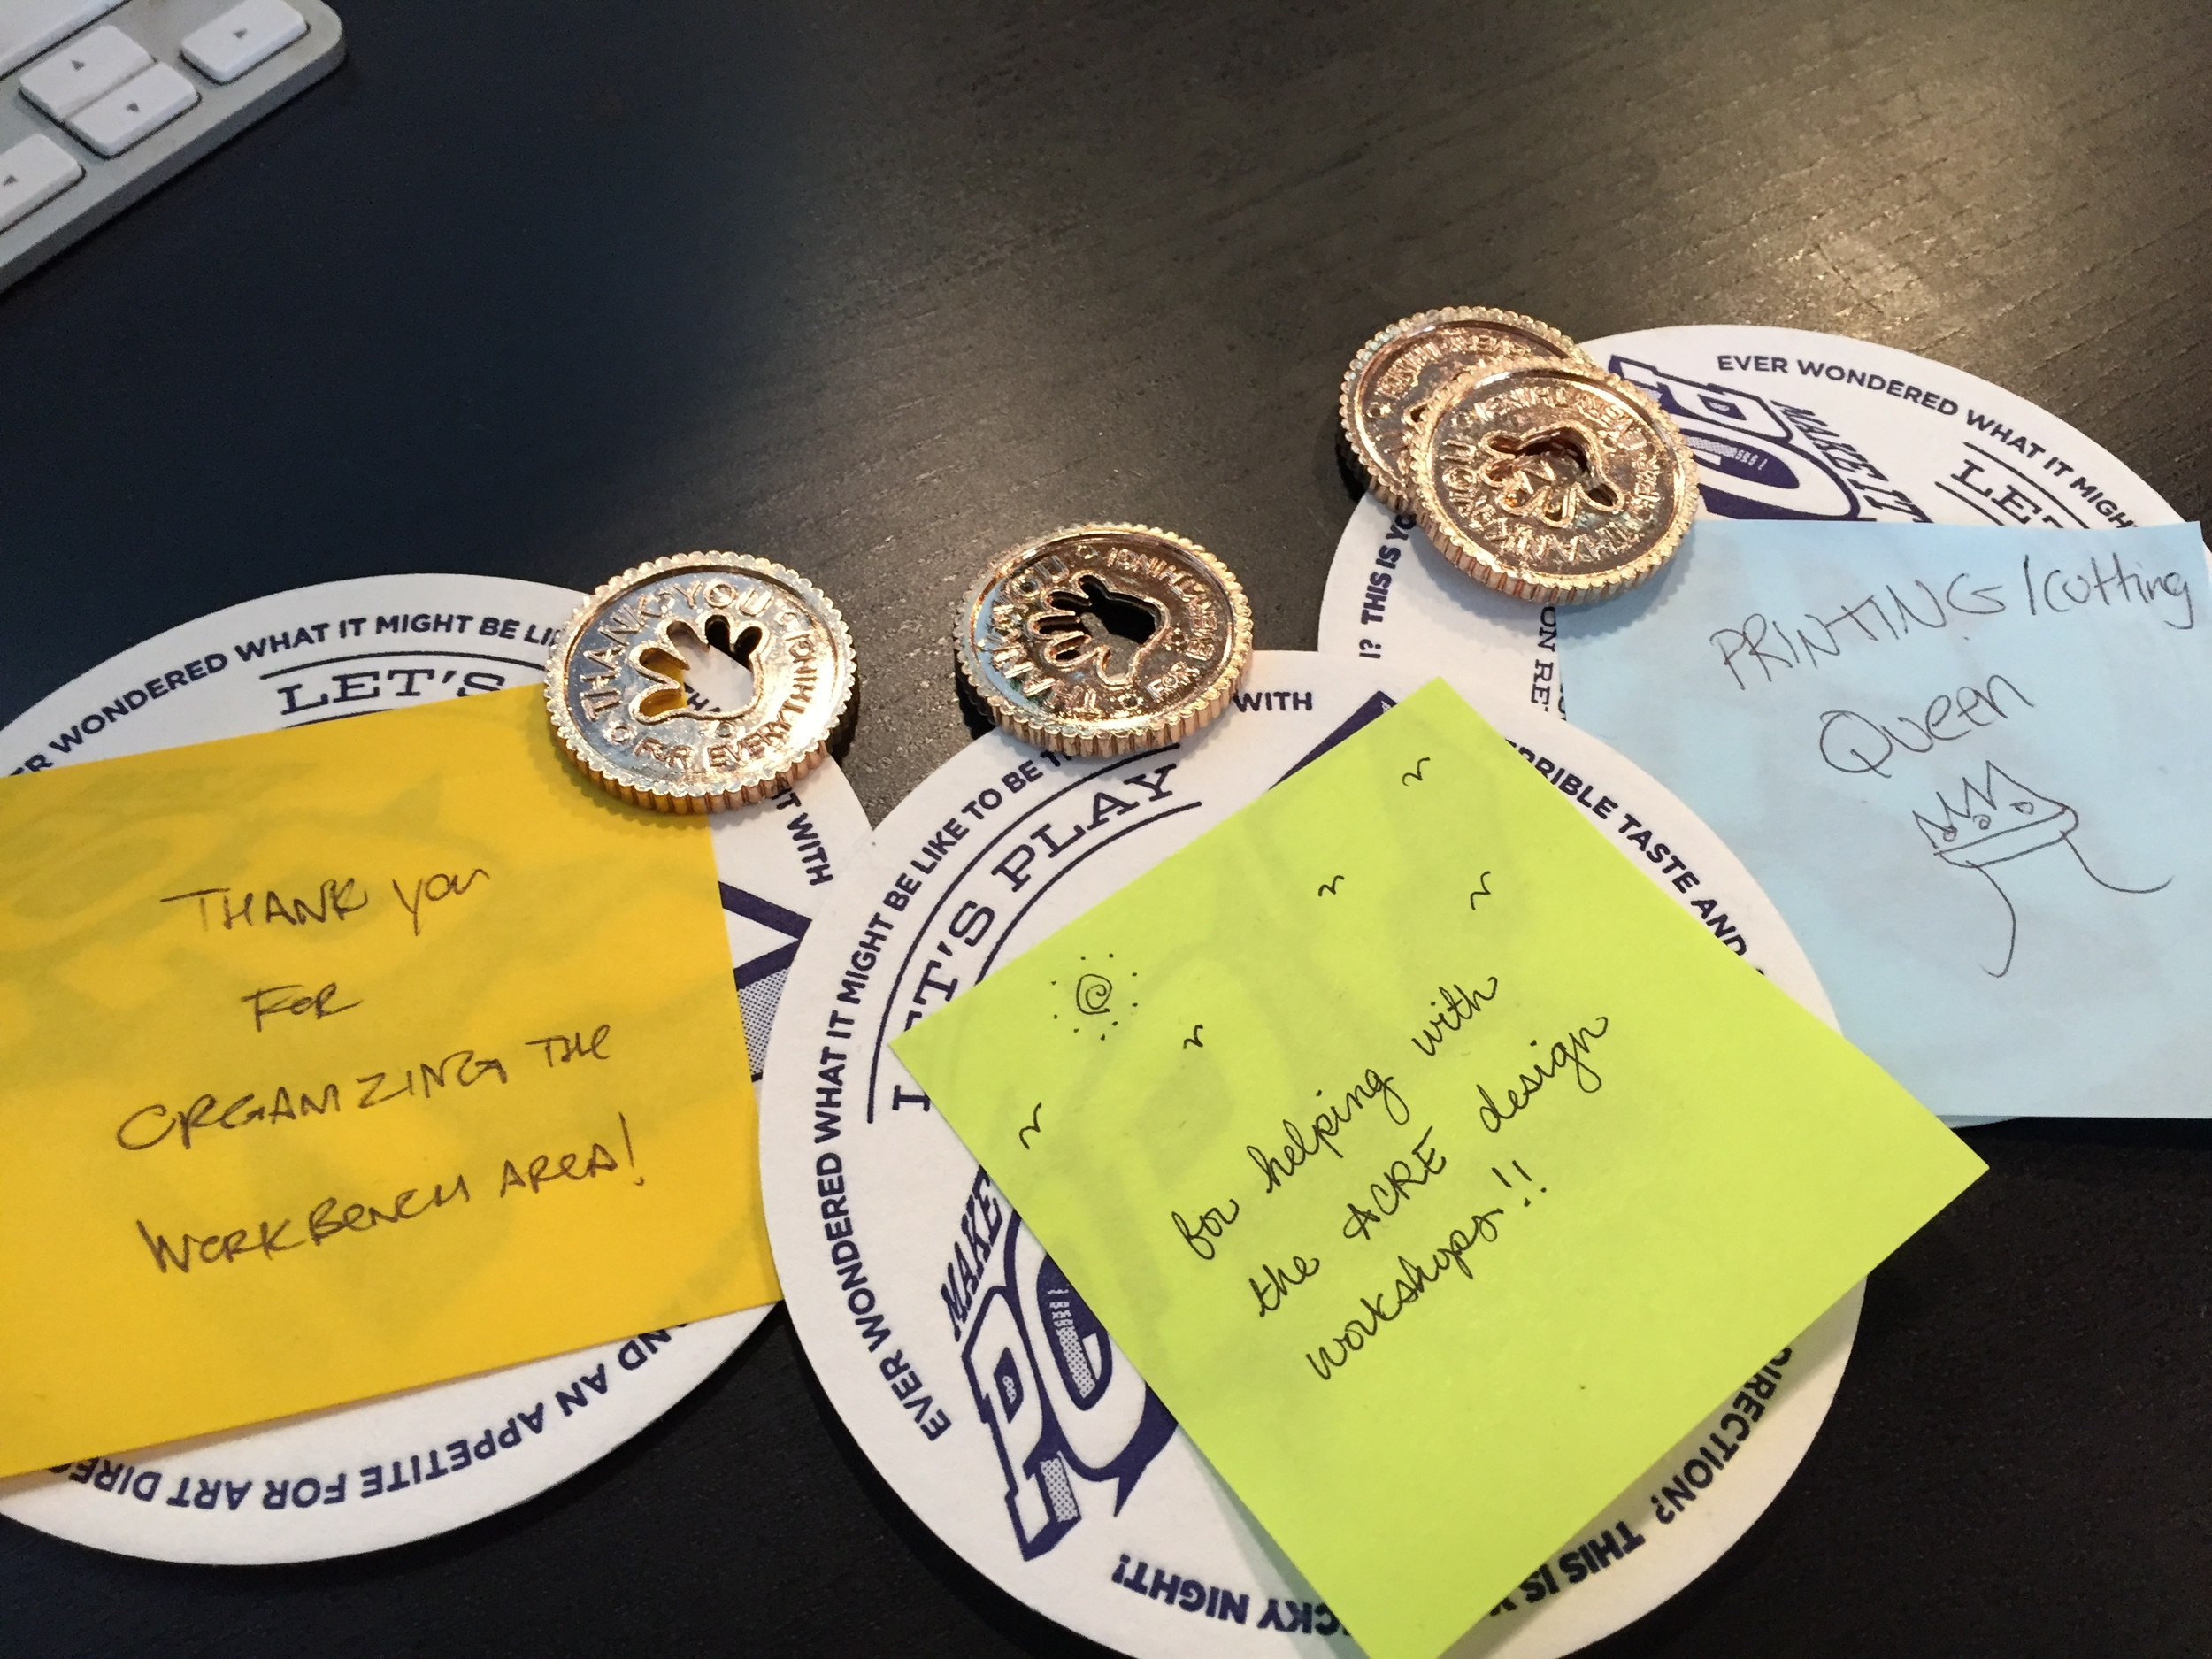 The Public Society, a graphic design firm in Brooklyn, created culture artifacts: tokens of appreciation.